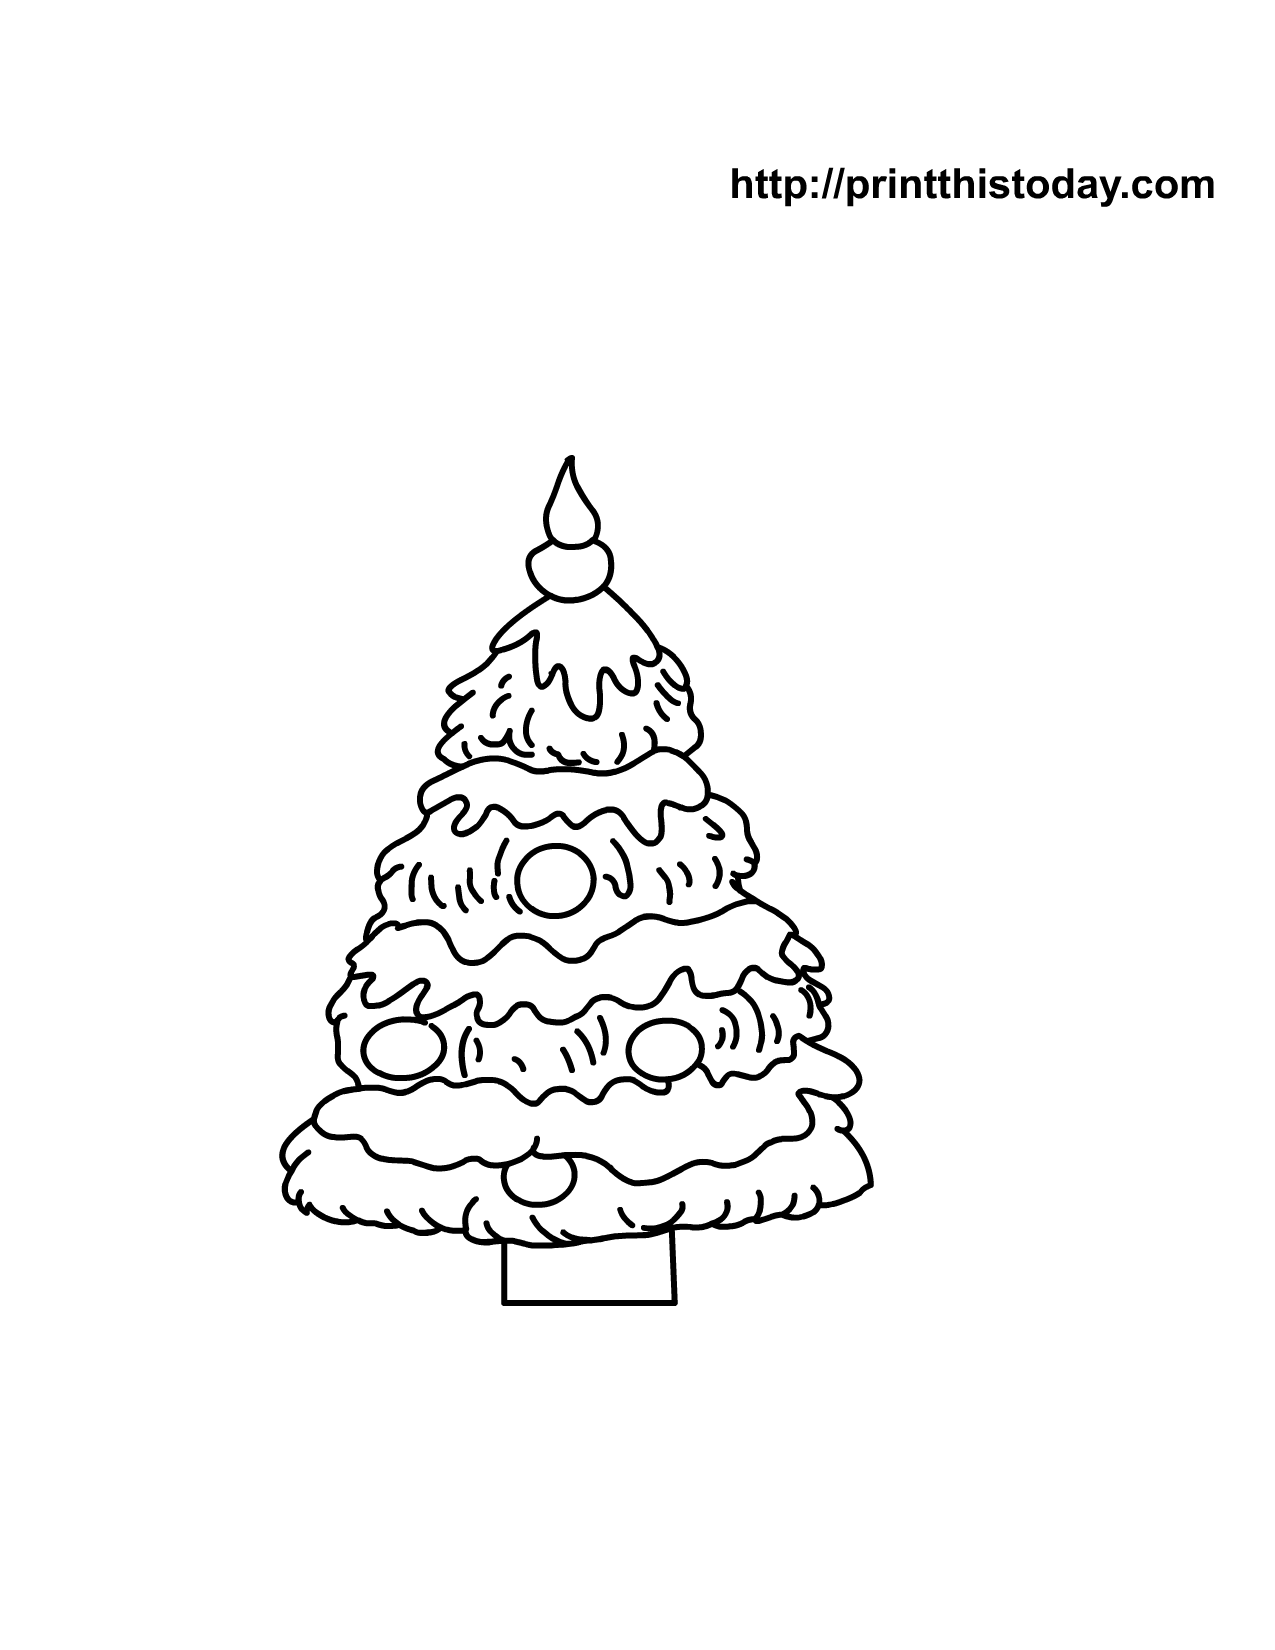 Kids coloring pages christmas trees printable - Free Printable Christmas Tree Coloring Page